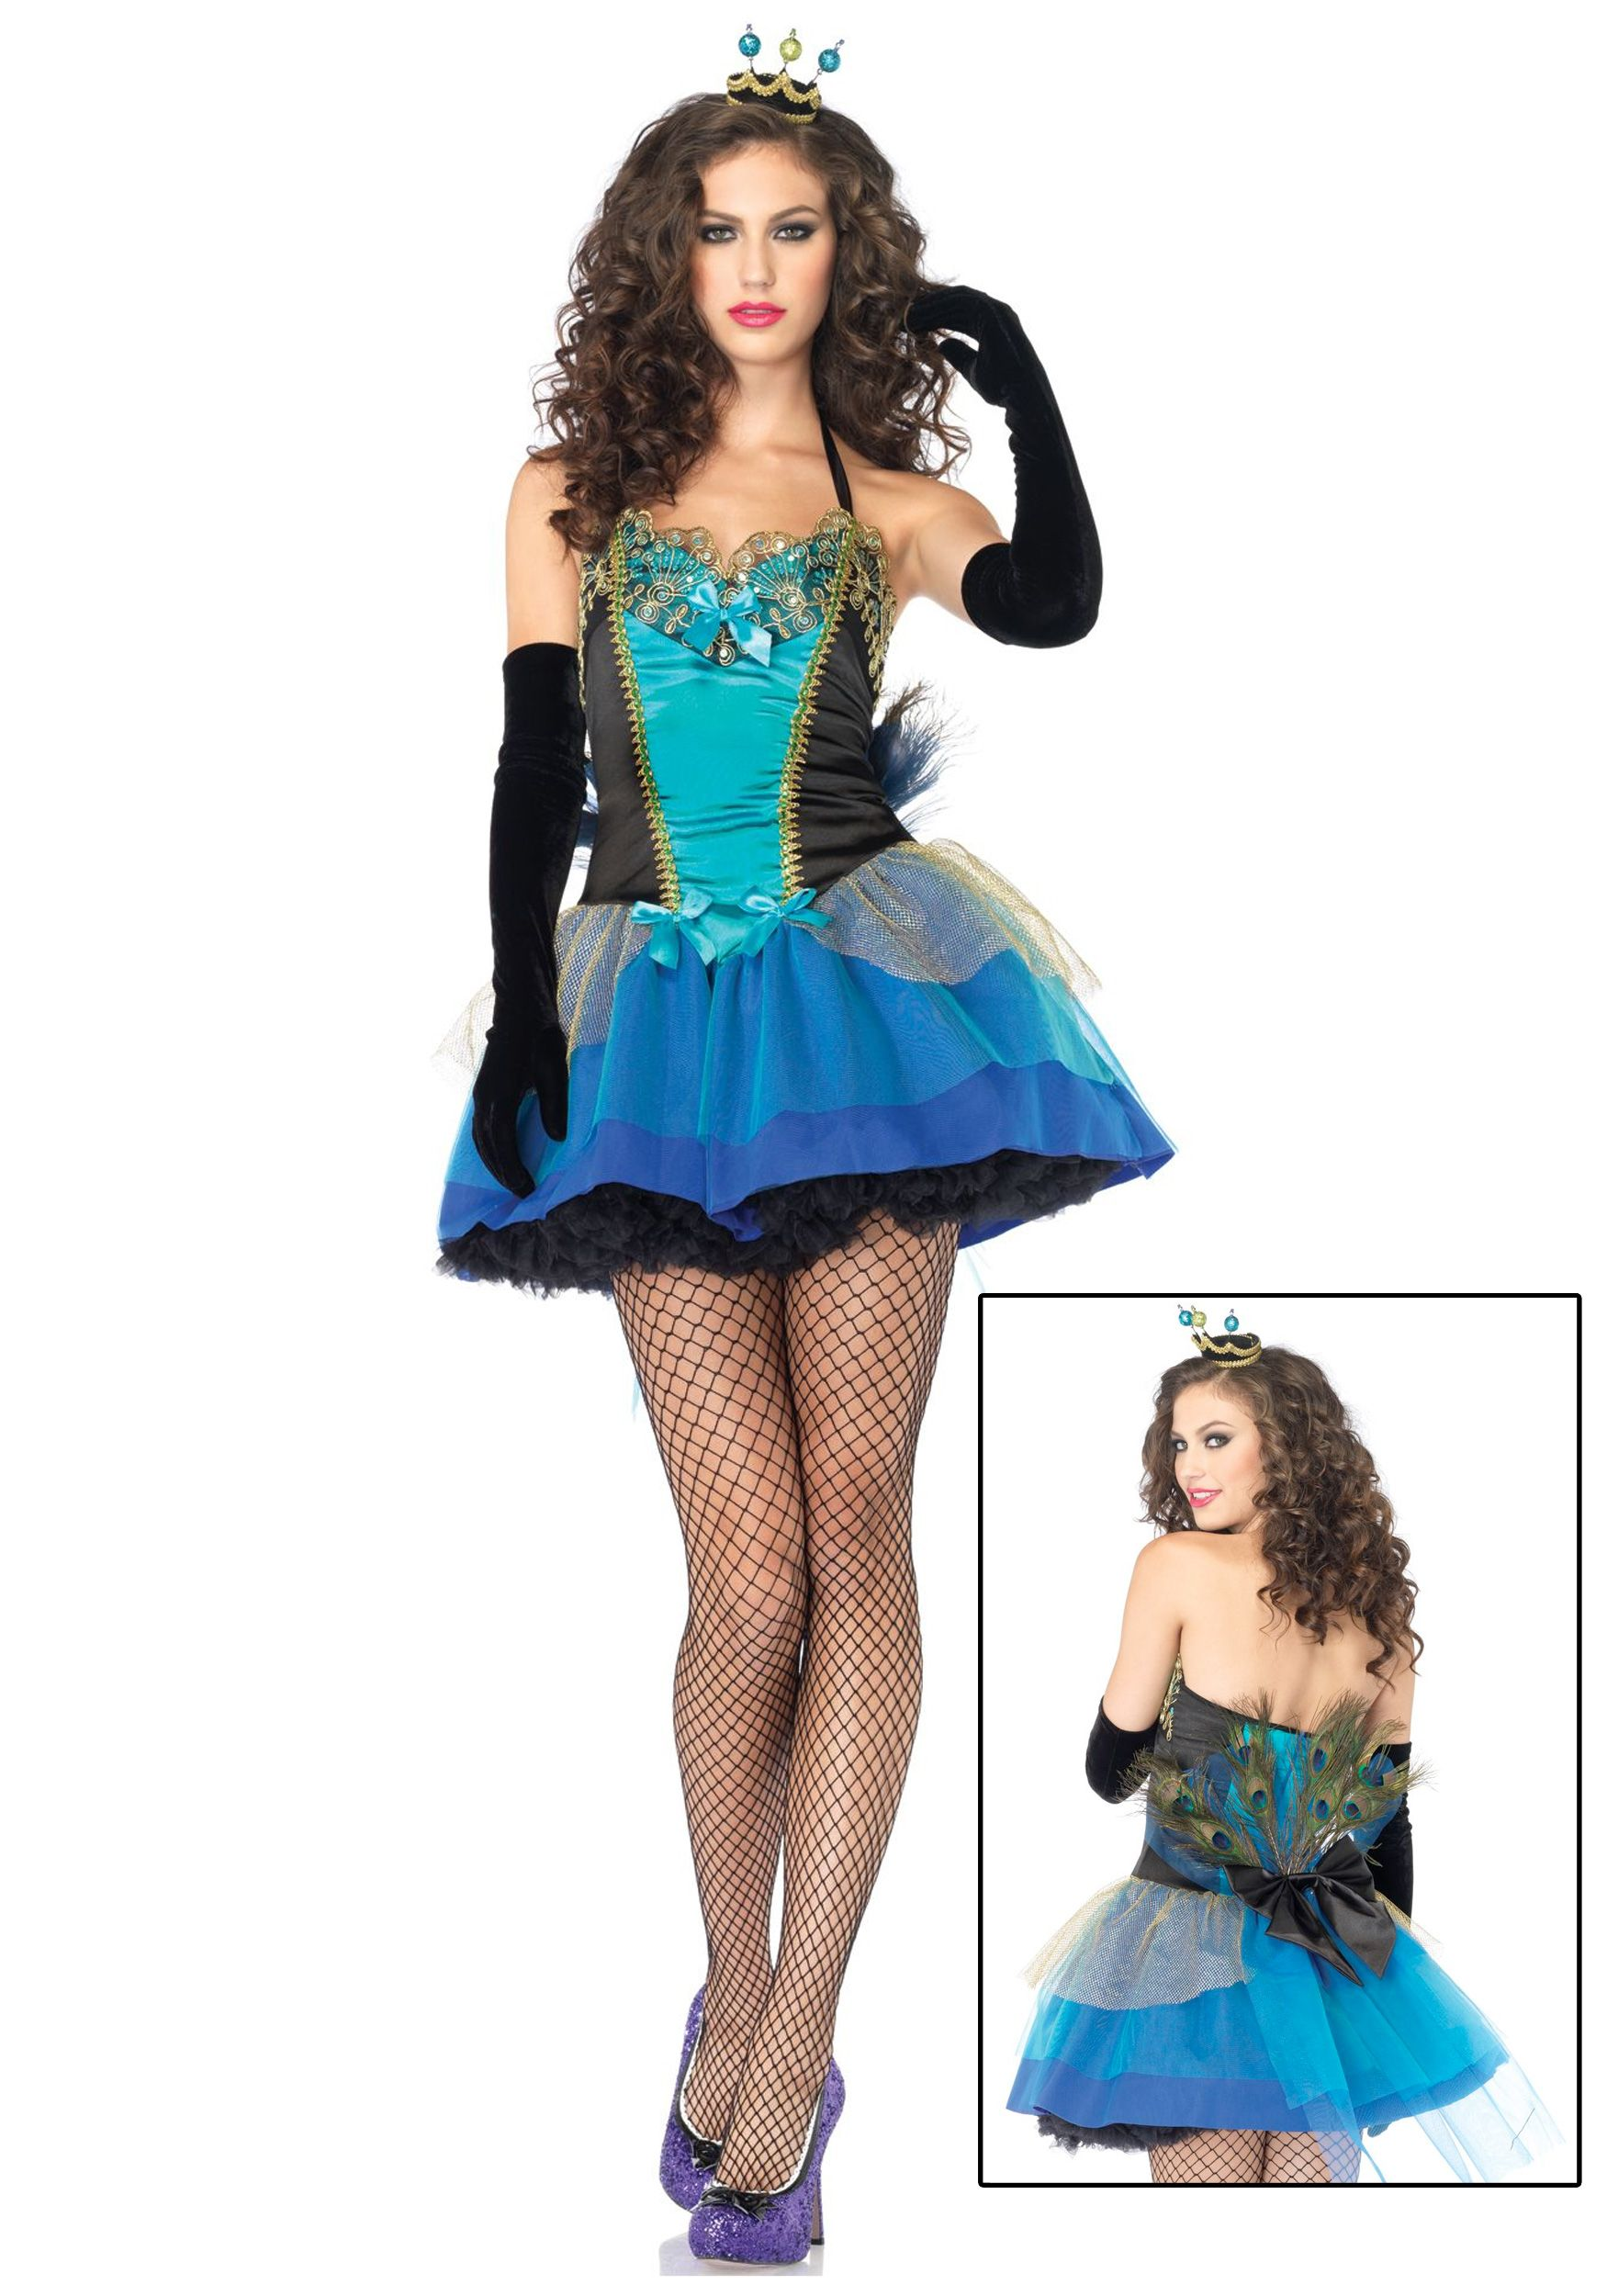 Sexy Costumes Maternity Costumes Kids Costumes Baby Costumes Boy Costumes  Girl Costumes Infant Costumes Teen Costumes Toddler Costumes Tween Costumes  Dog ...